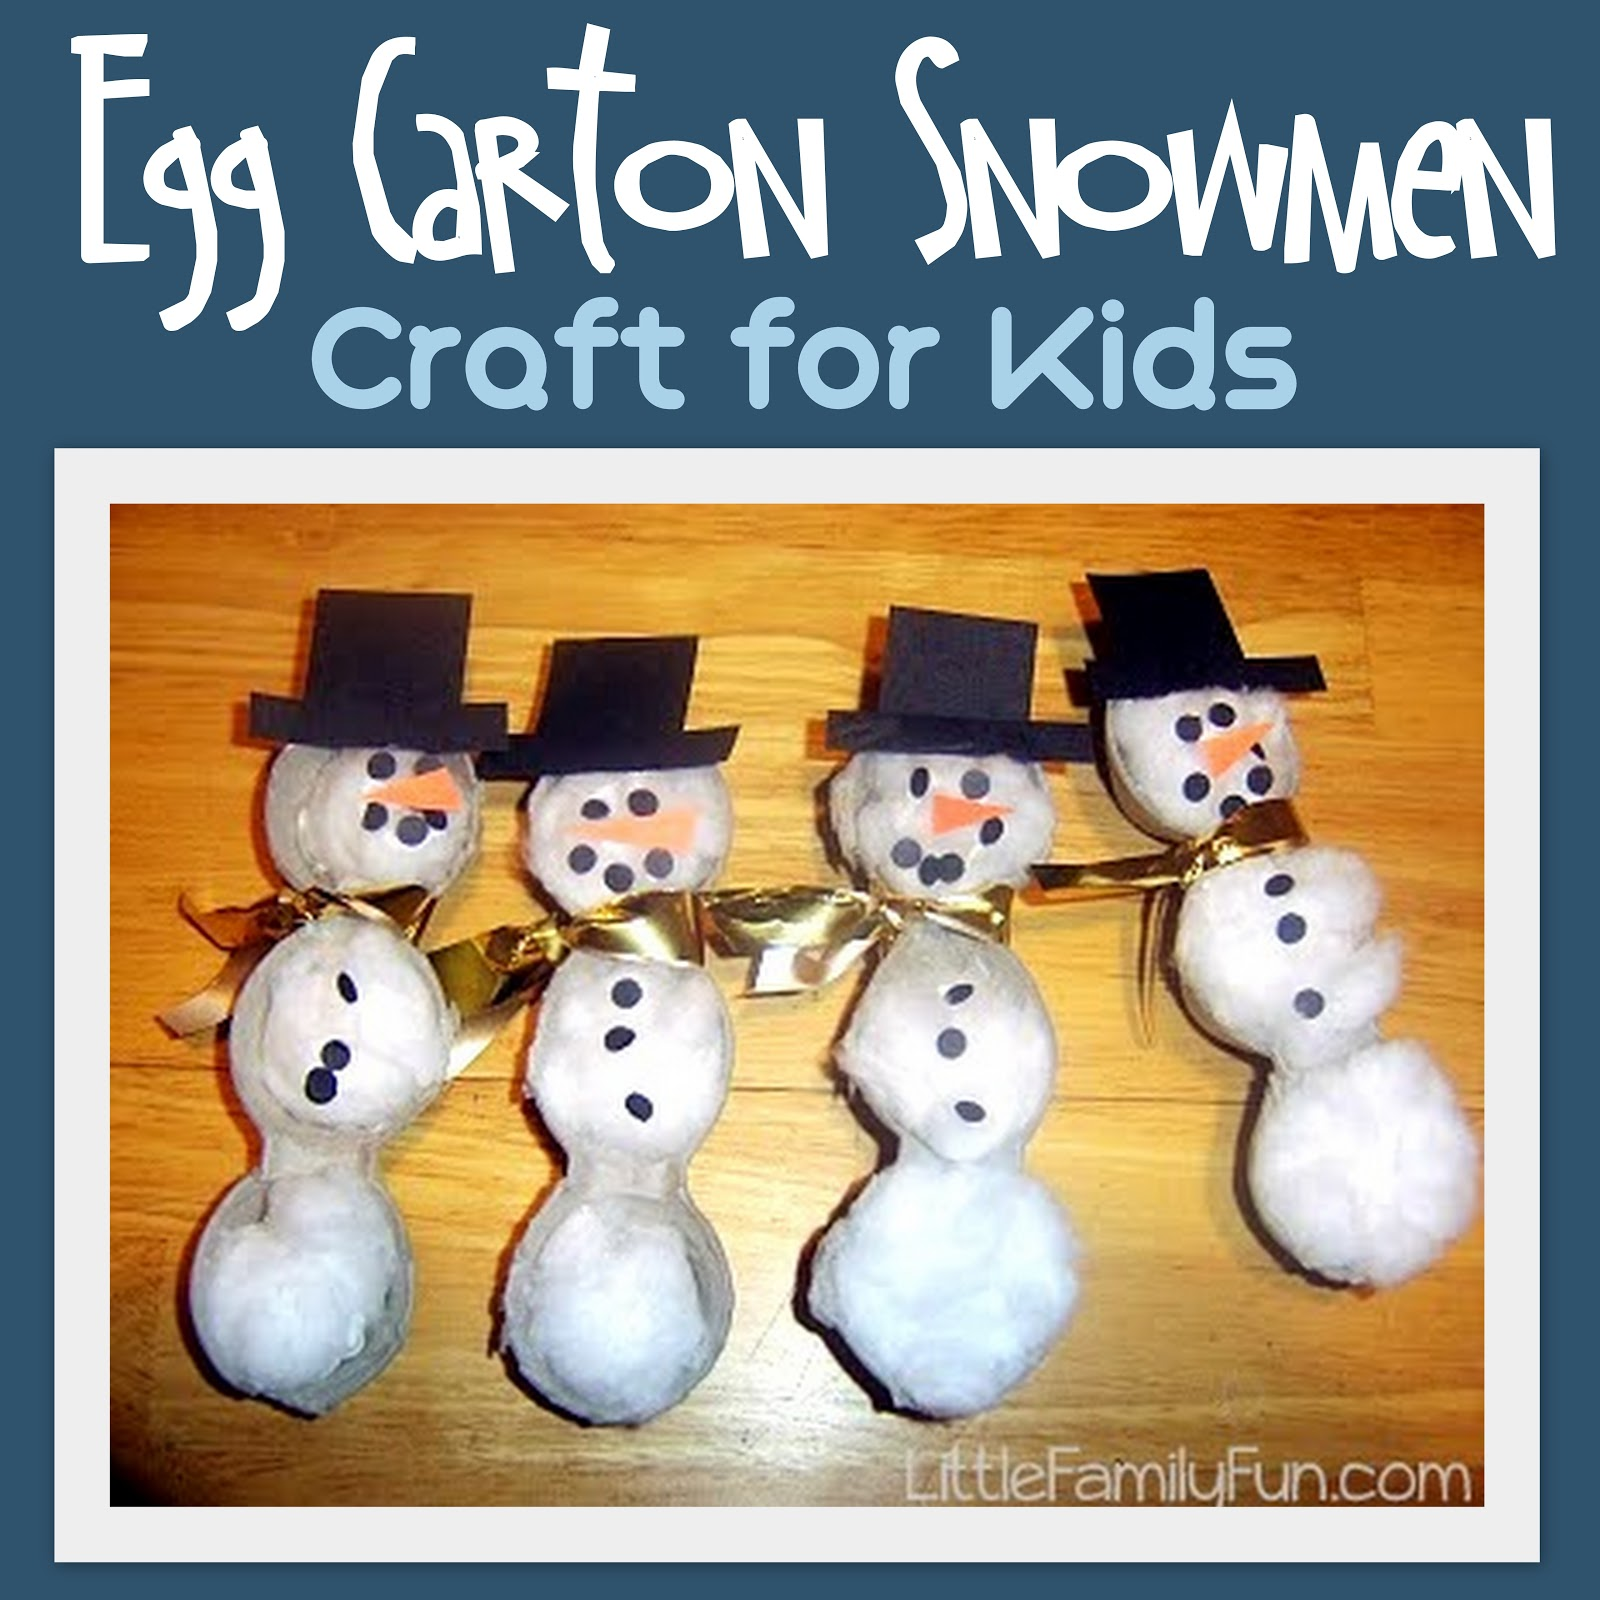 Dec 19 egg carton snowmen for Winter holiday crafts for kids